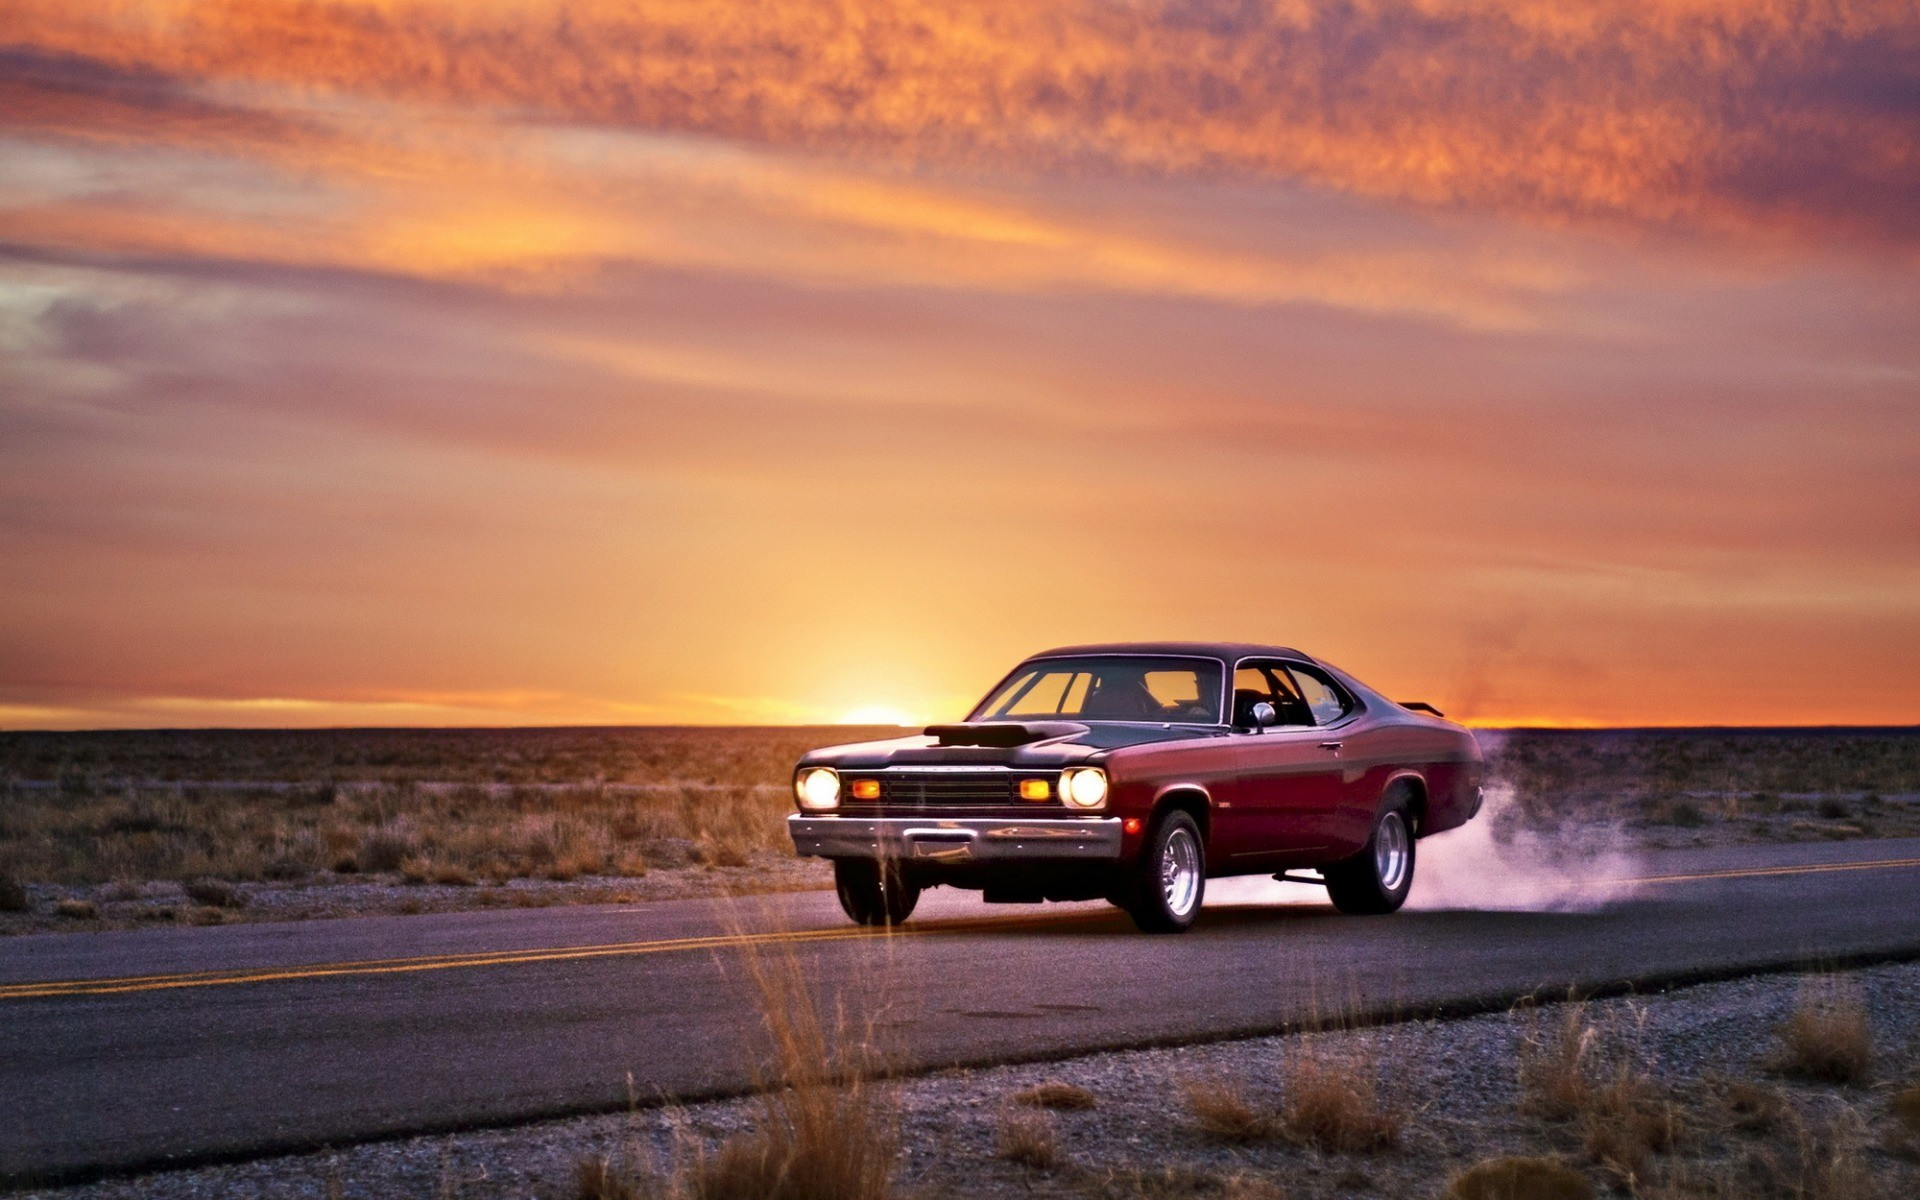 Muscle car hd cars 4k wallpapers images backgrounds - Wallpaper hd 4k car ...